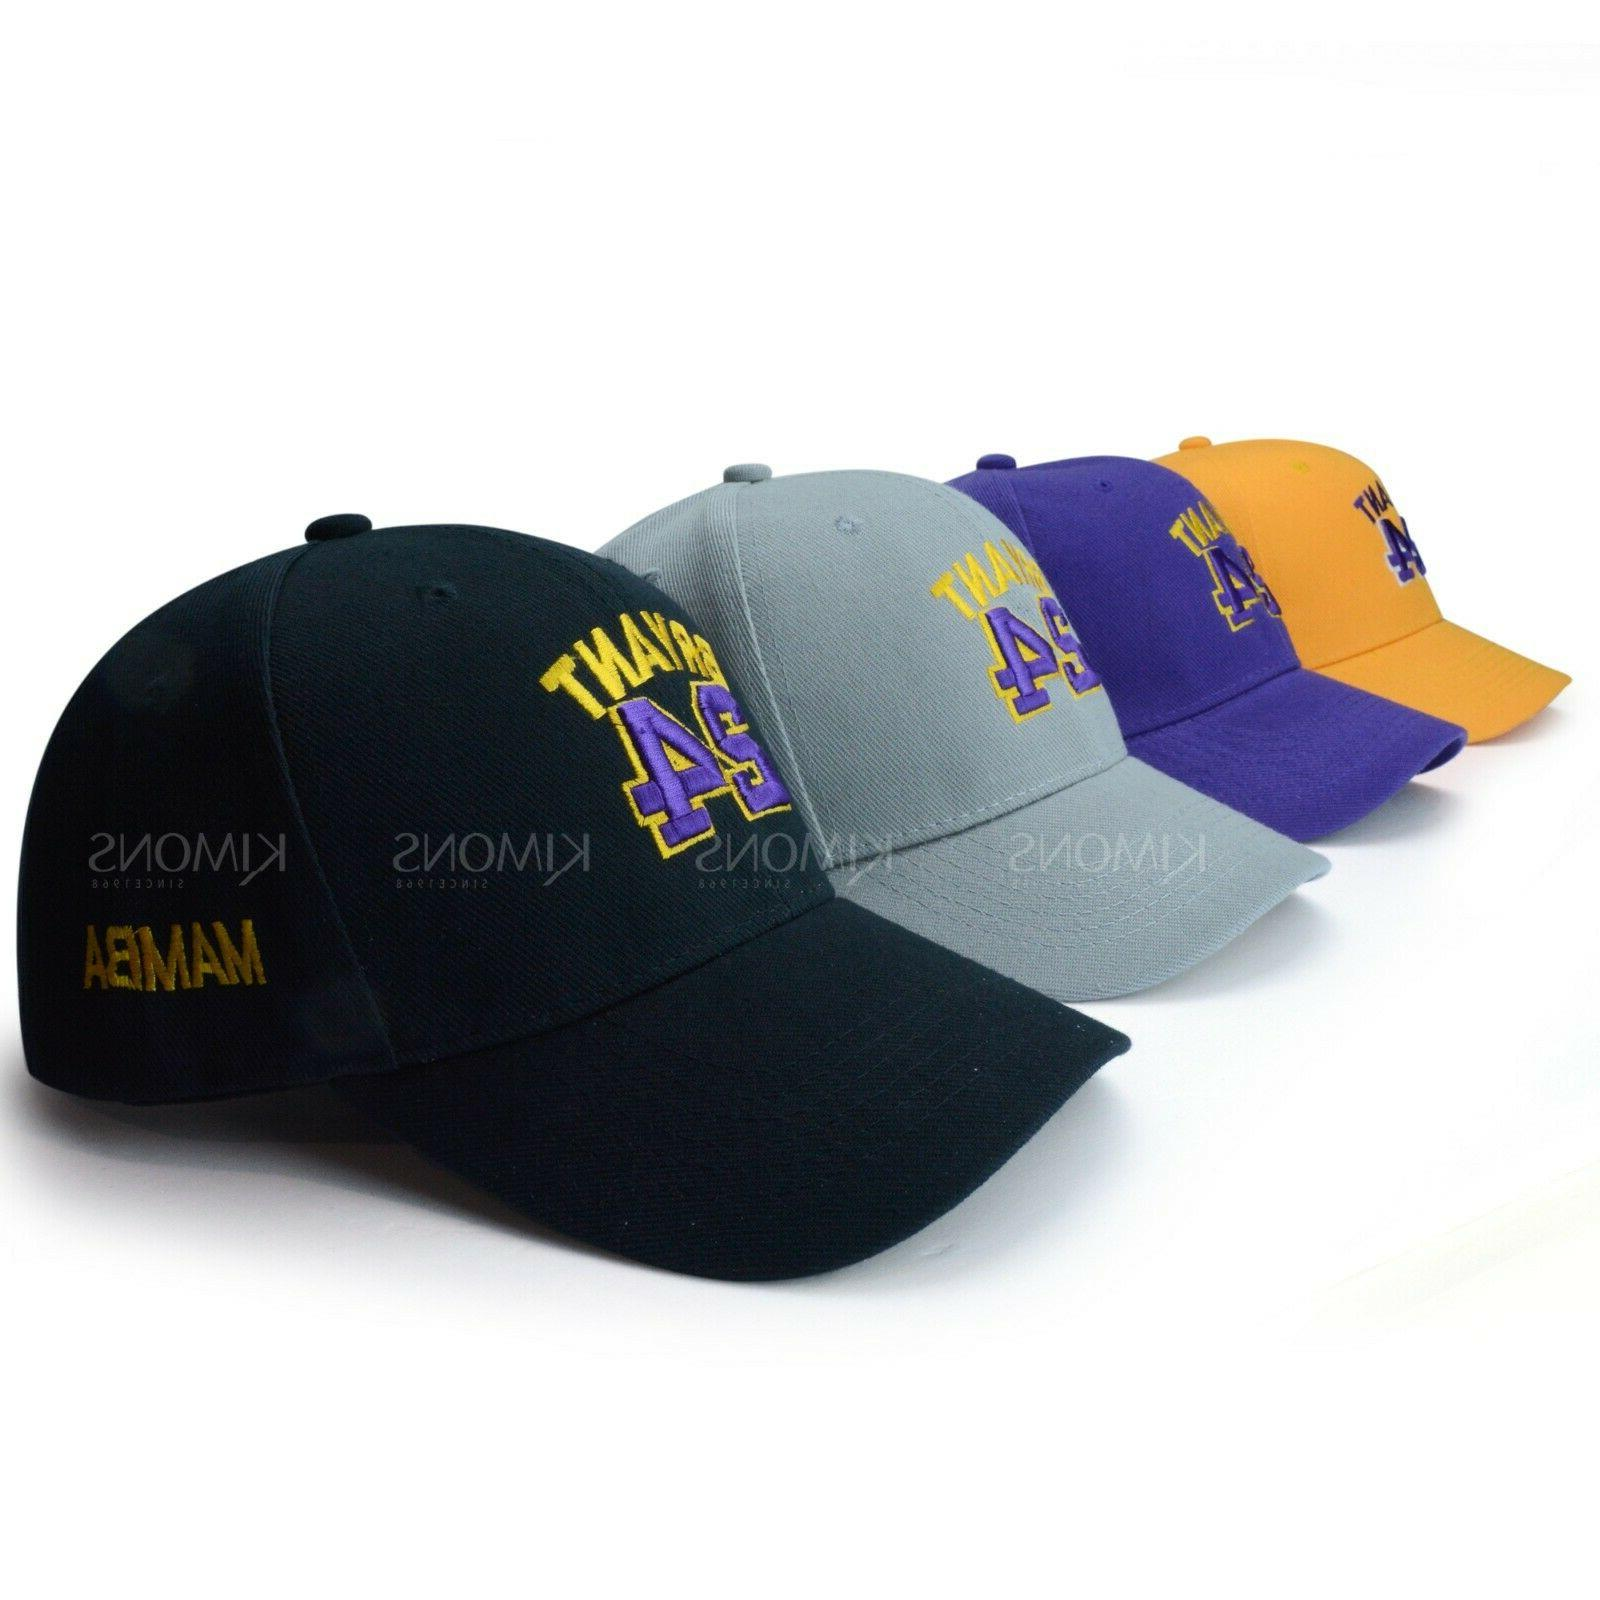 Bryant 24 - Bryant mamba Dad Angeles Snapback